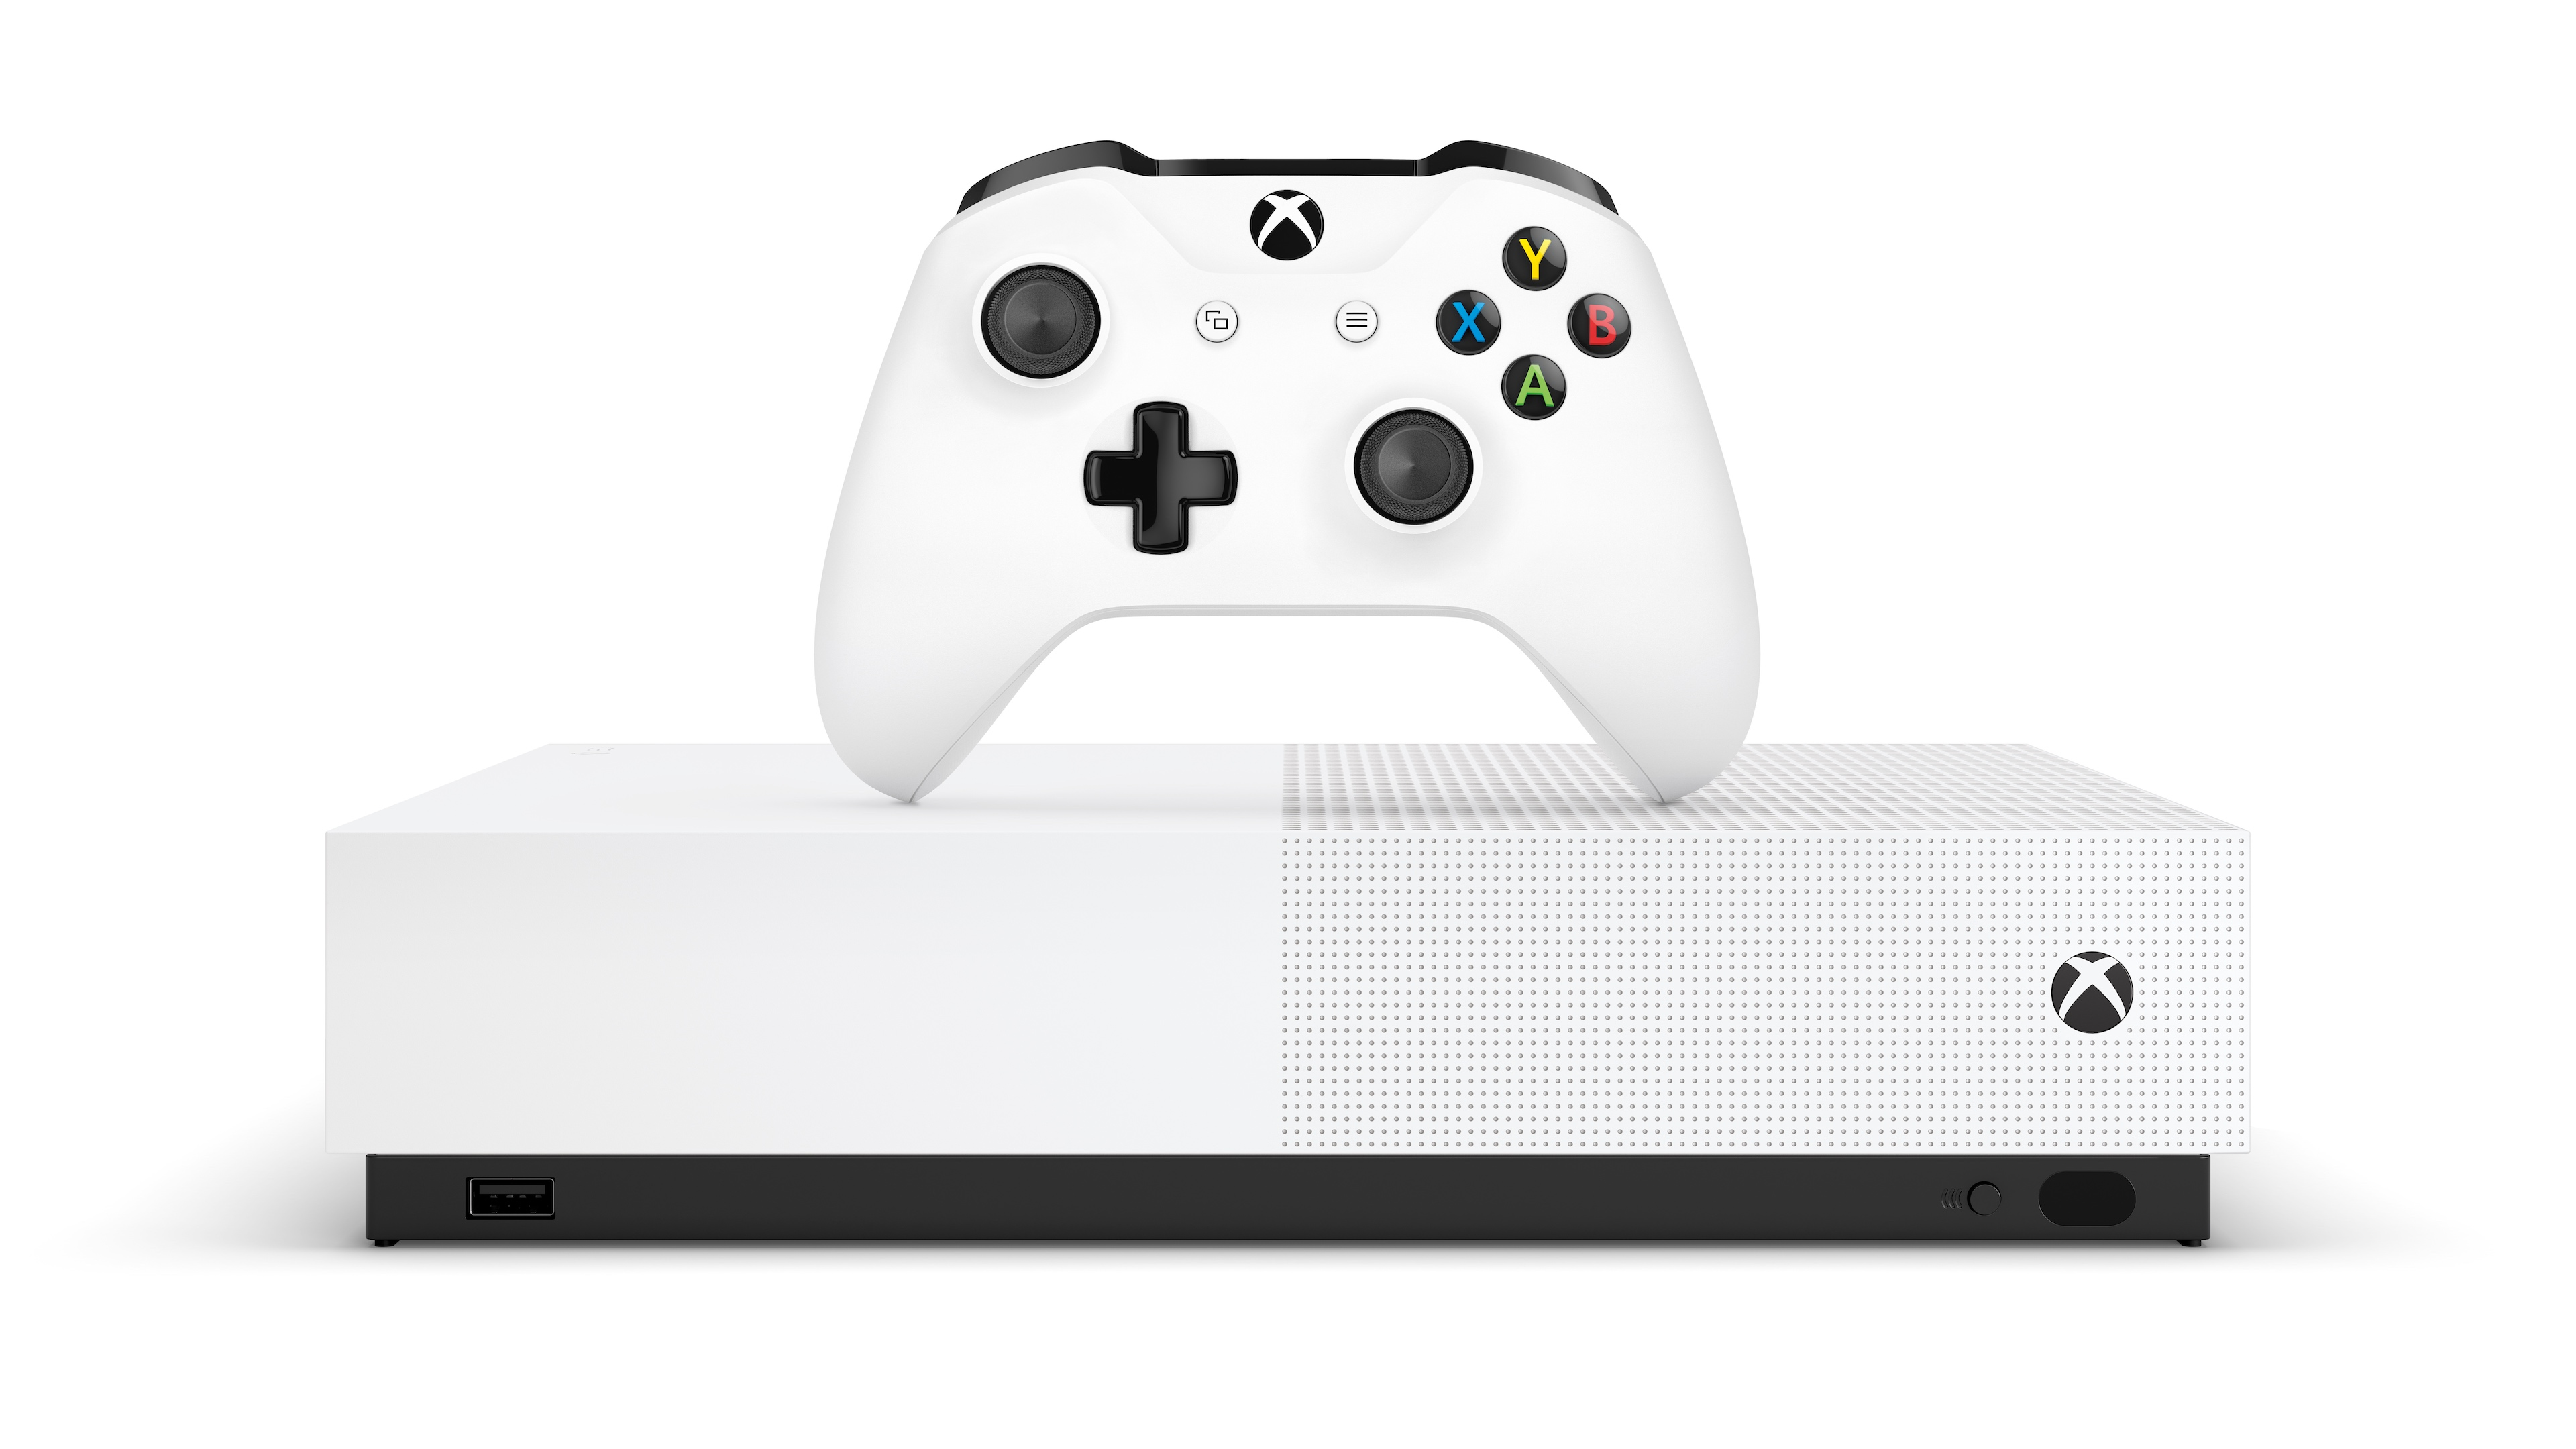 Xbox One S All-Digital Edition launches May 7 for $249.99